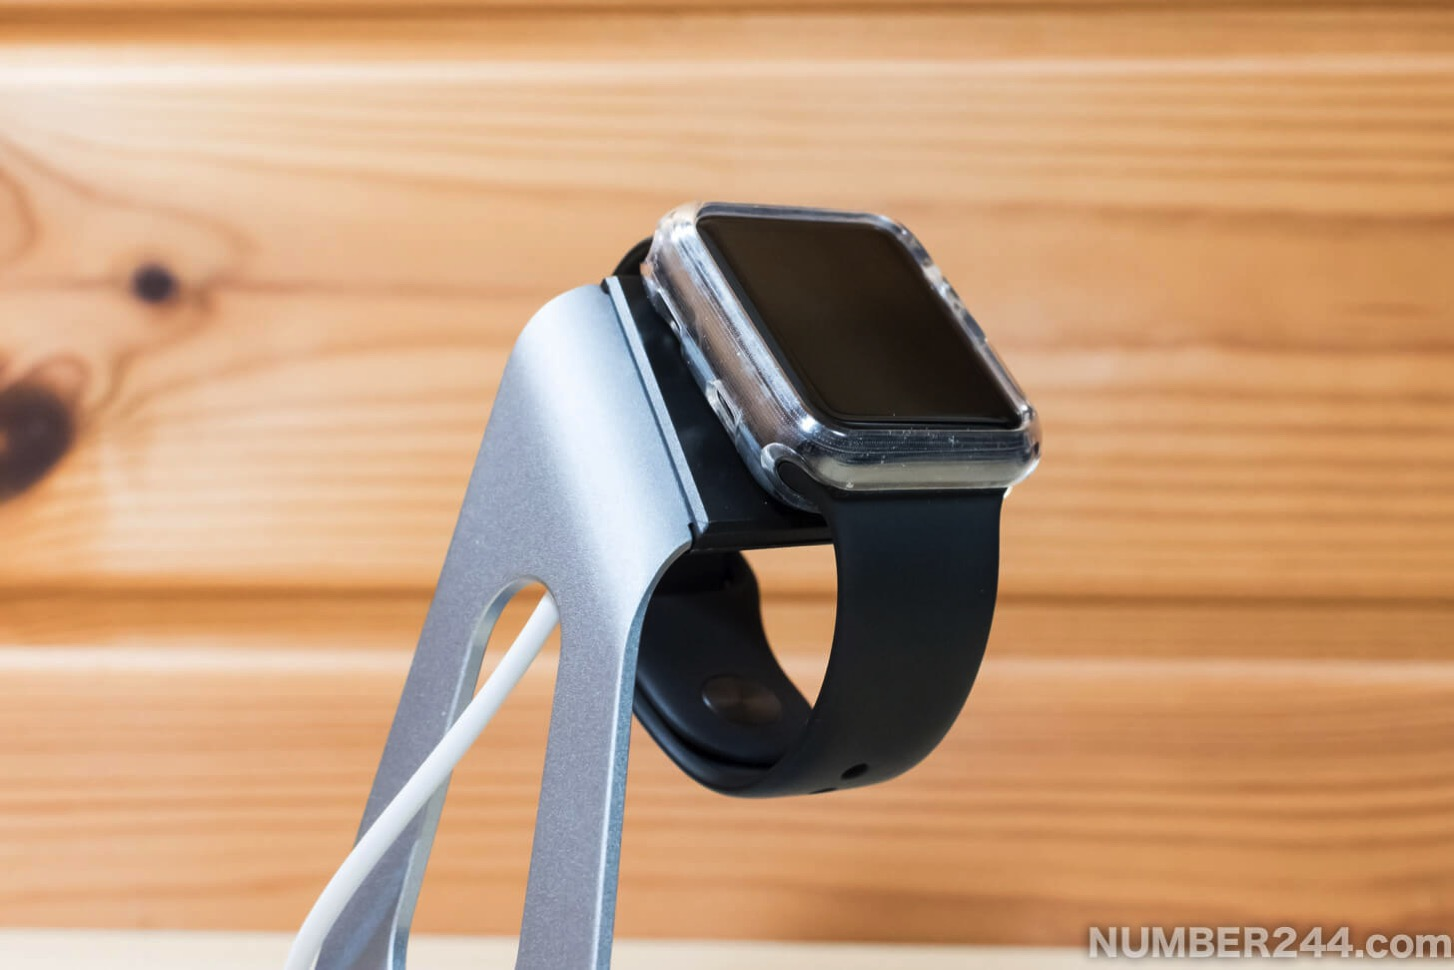 Moobom Apple Watch stand12